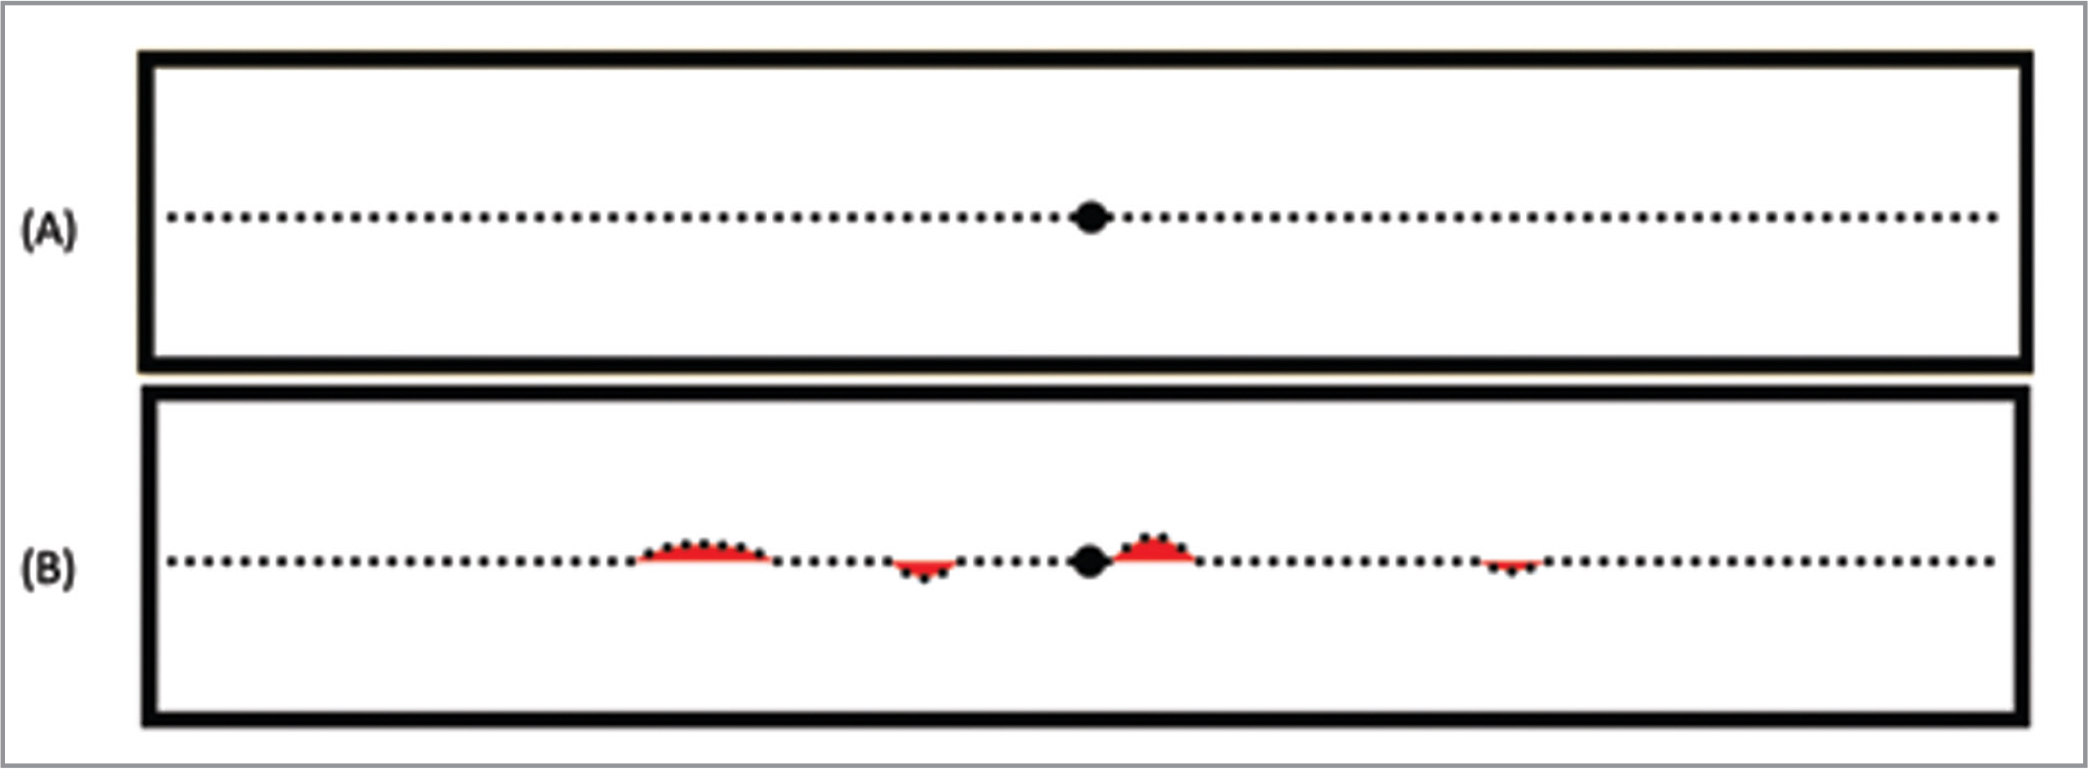 (A) Depiction of the objectively straight dotted line displayed on our software platform, which is centered on a central fixation point. (B) Schematic depiction of several foci where a subject may have deformed the straight line using the testing interface. The areas denoted in red represent the areas of space that are cumulatively summed to calculate manipulated area under the curve.